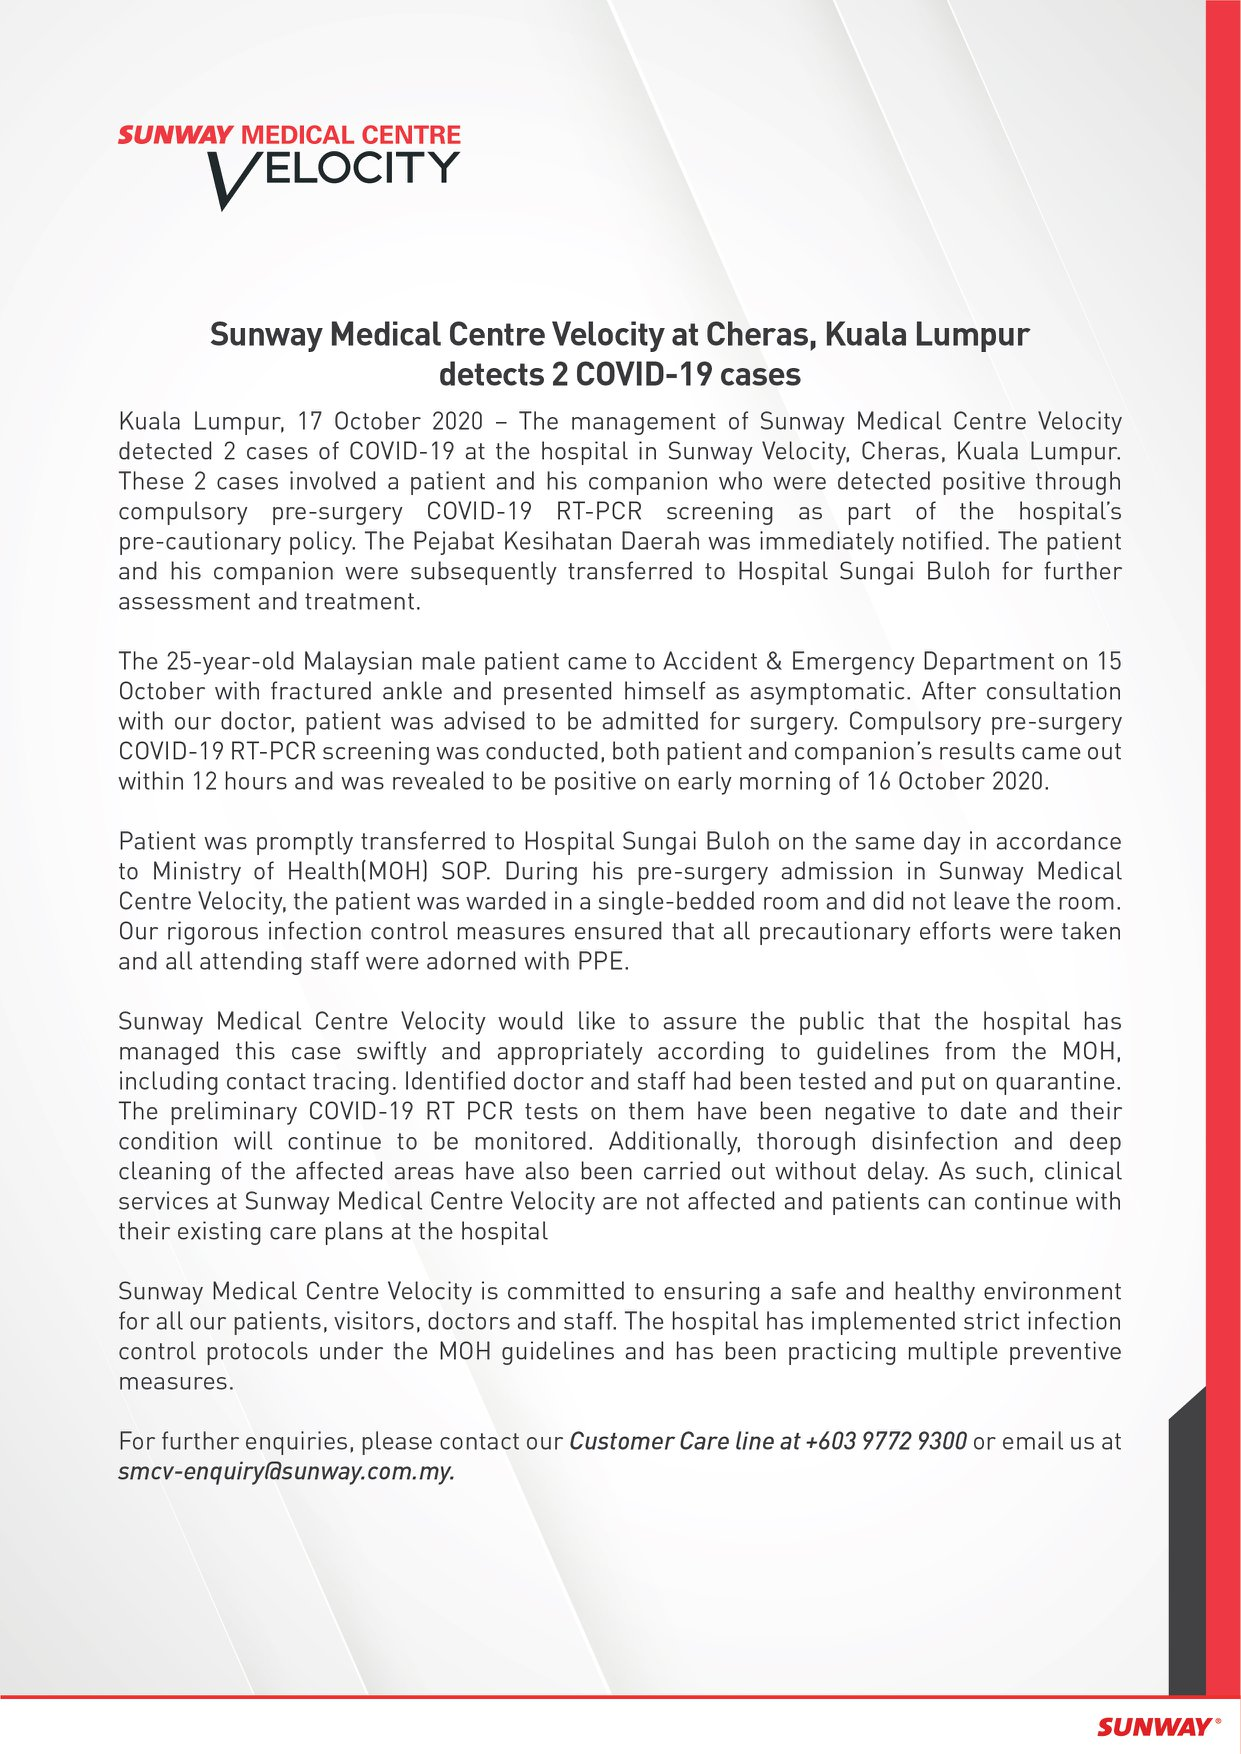 Sunway Medical Centre Velocity